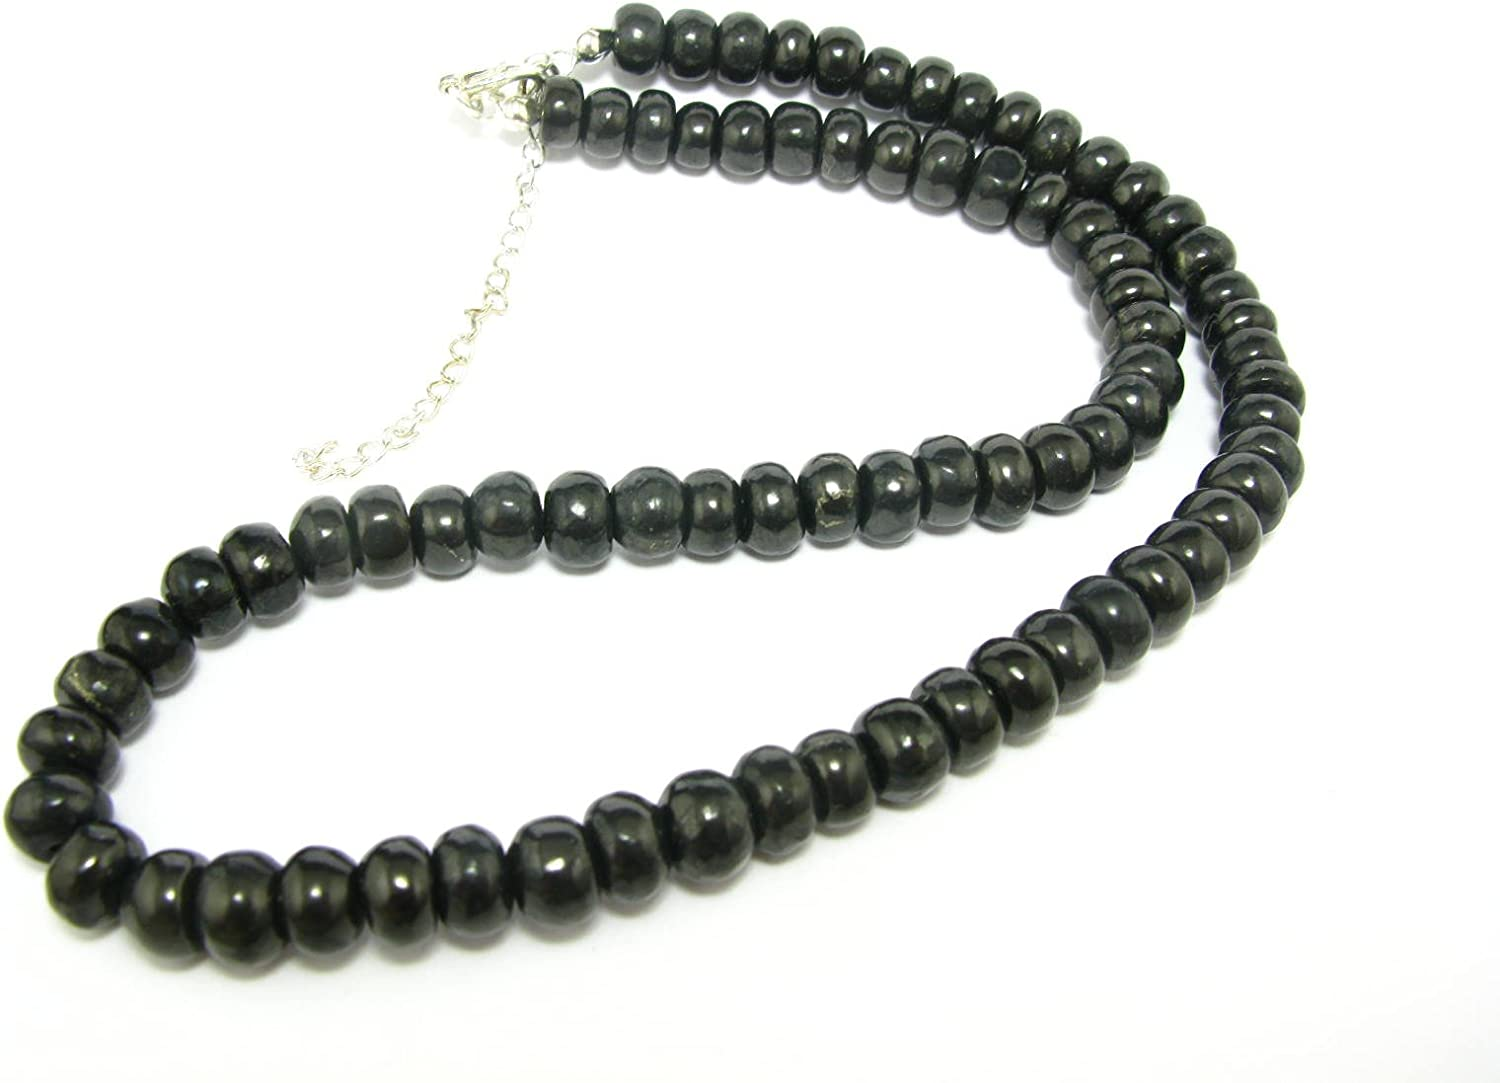 19 Shungite Necklace Beads From Russia Rondelle Beads